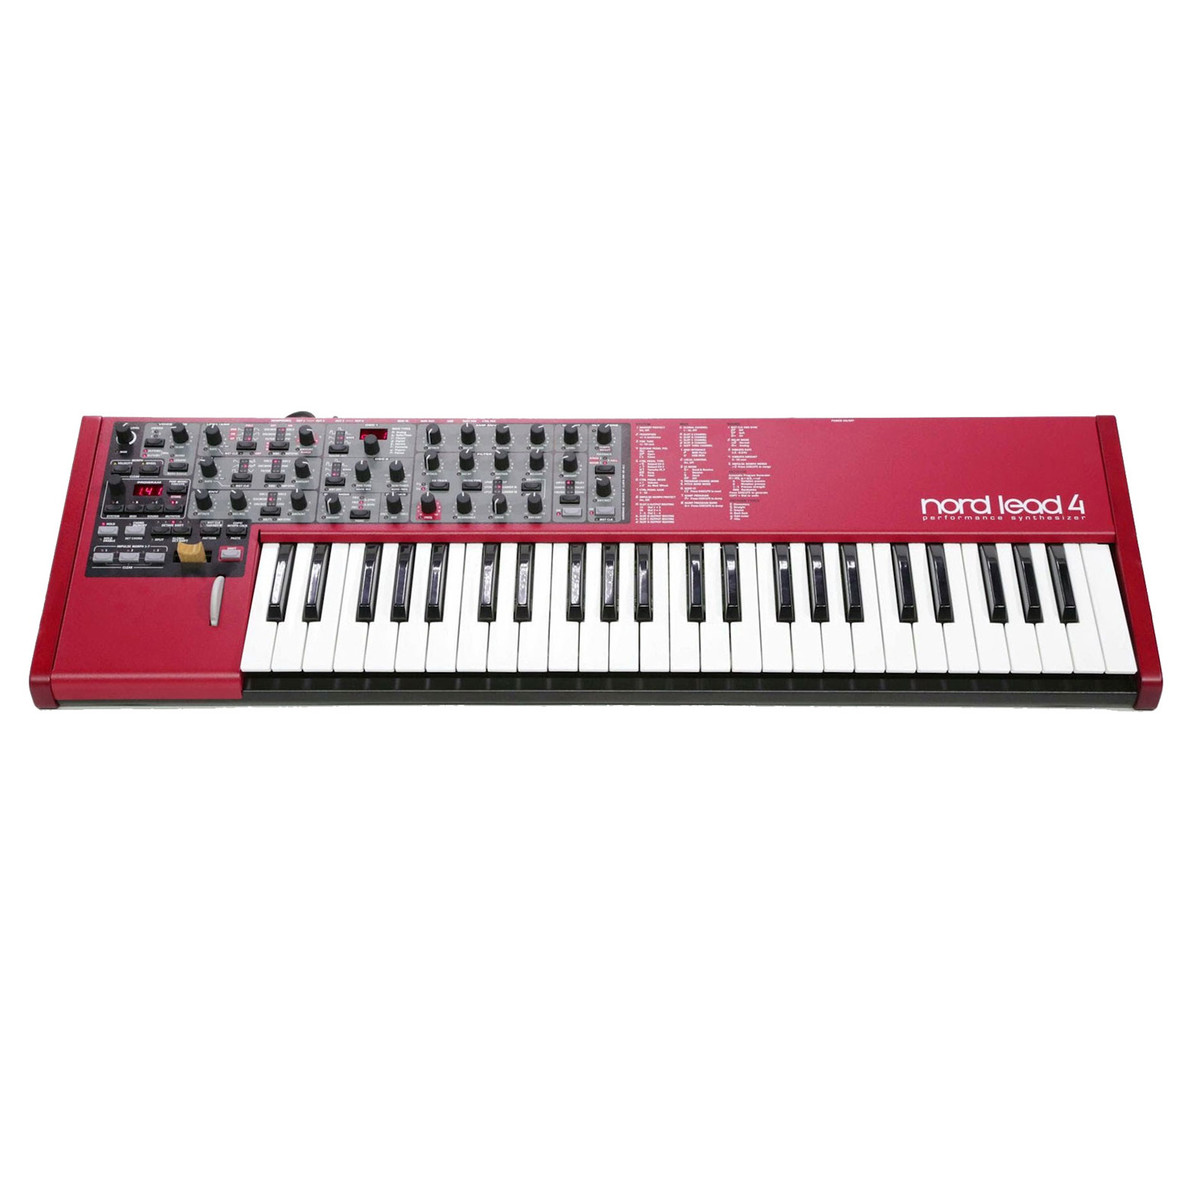 nord lead 4 performance synthesizer keyboard at. Black Bedroom Furniture Sets. Home Design Ideas